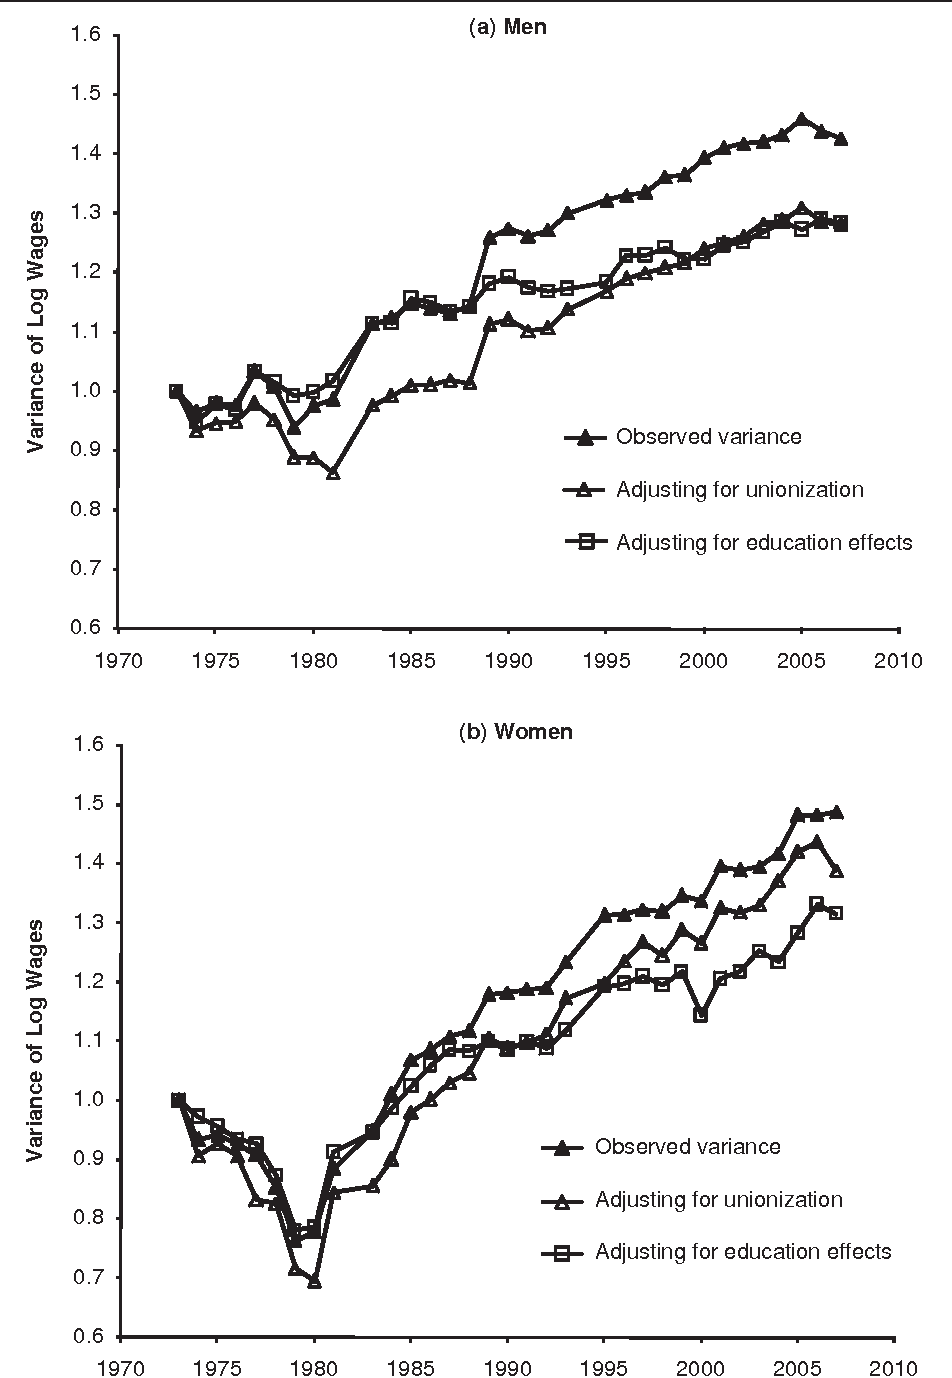 Figure 8. Total Variance of Log Hourly Wages, Full-Time, Private Sector Men and Women, 1973 to 2007; Variances Adjust for Unionization and Education; Variances Are Set to Equal One in 1973